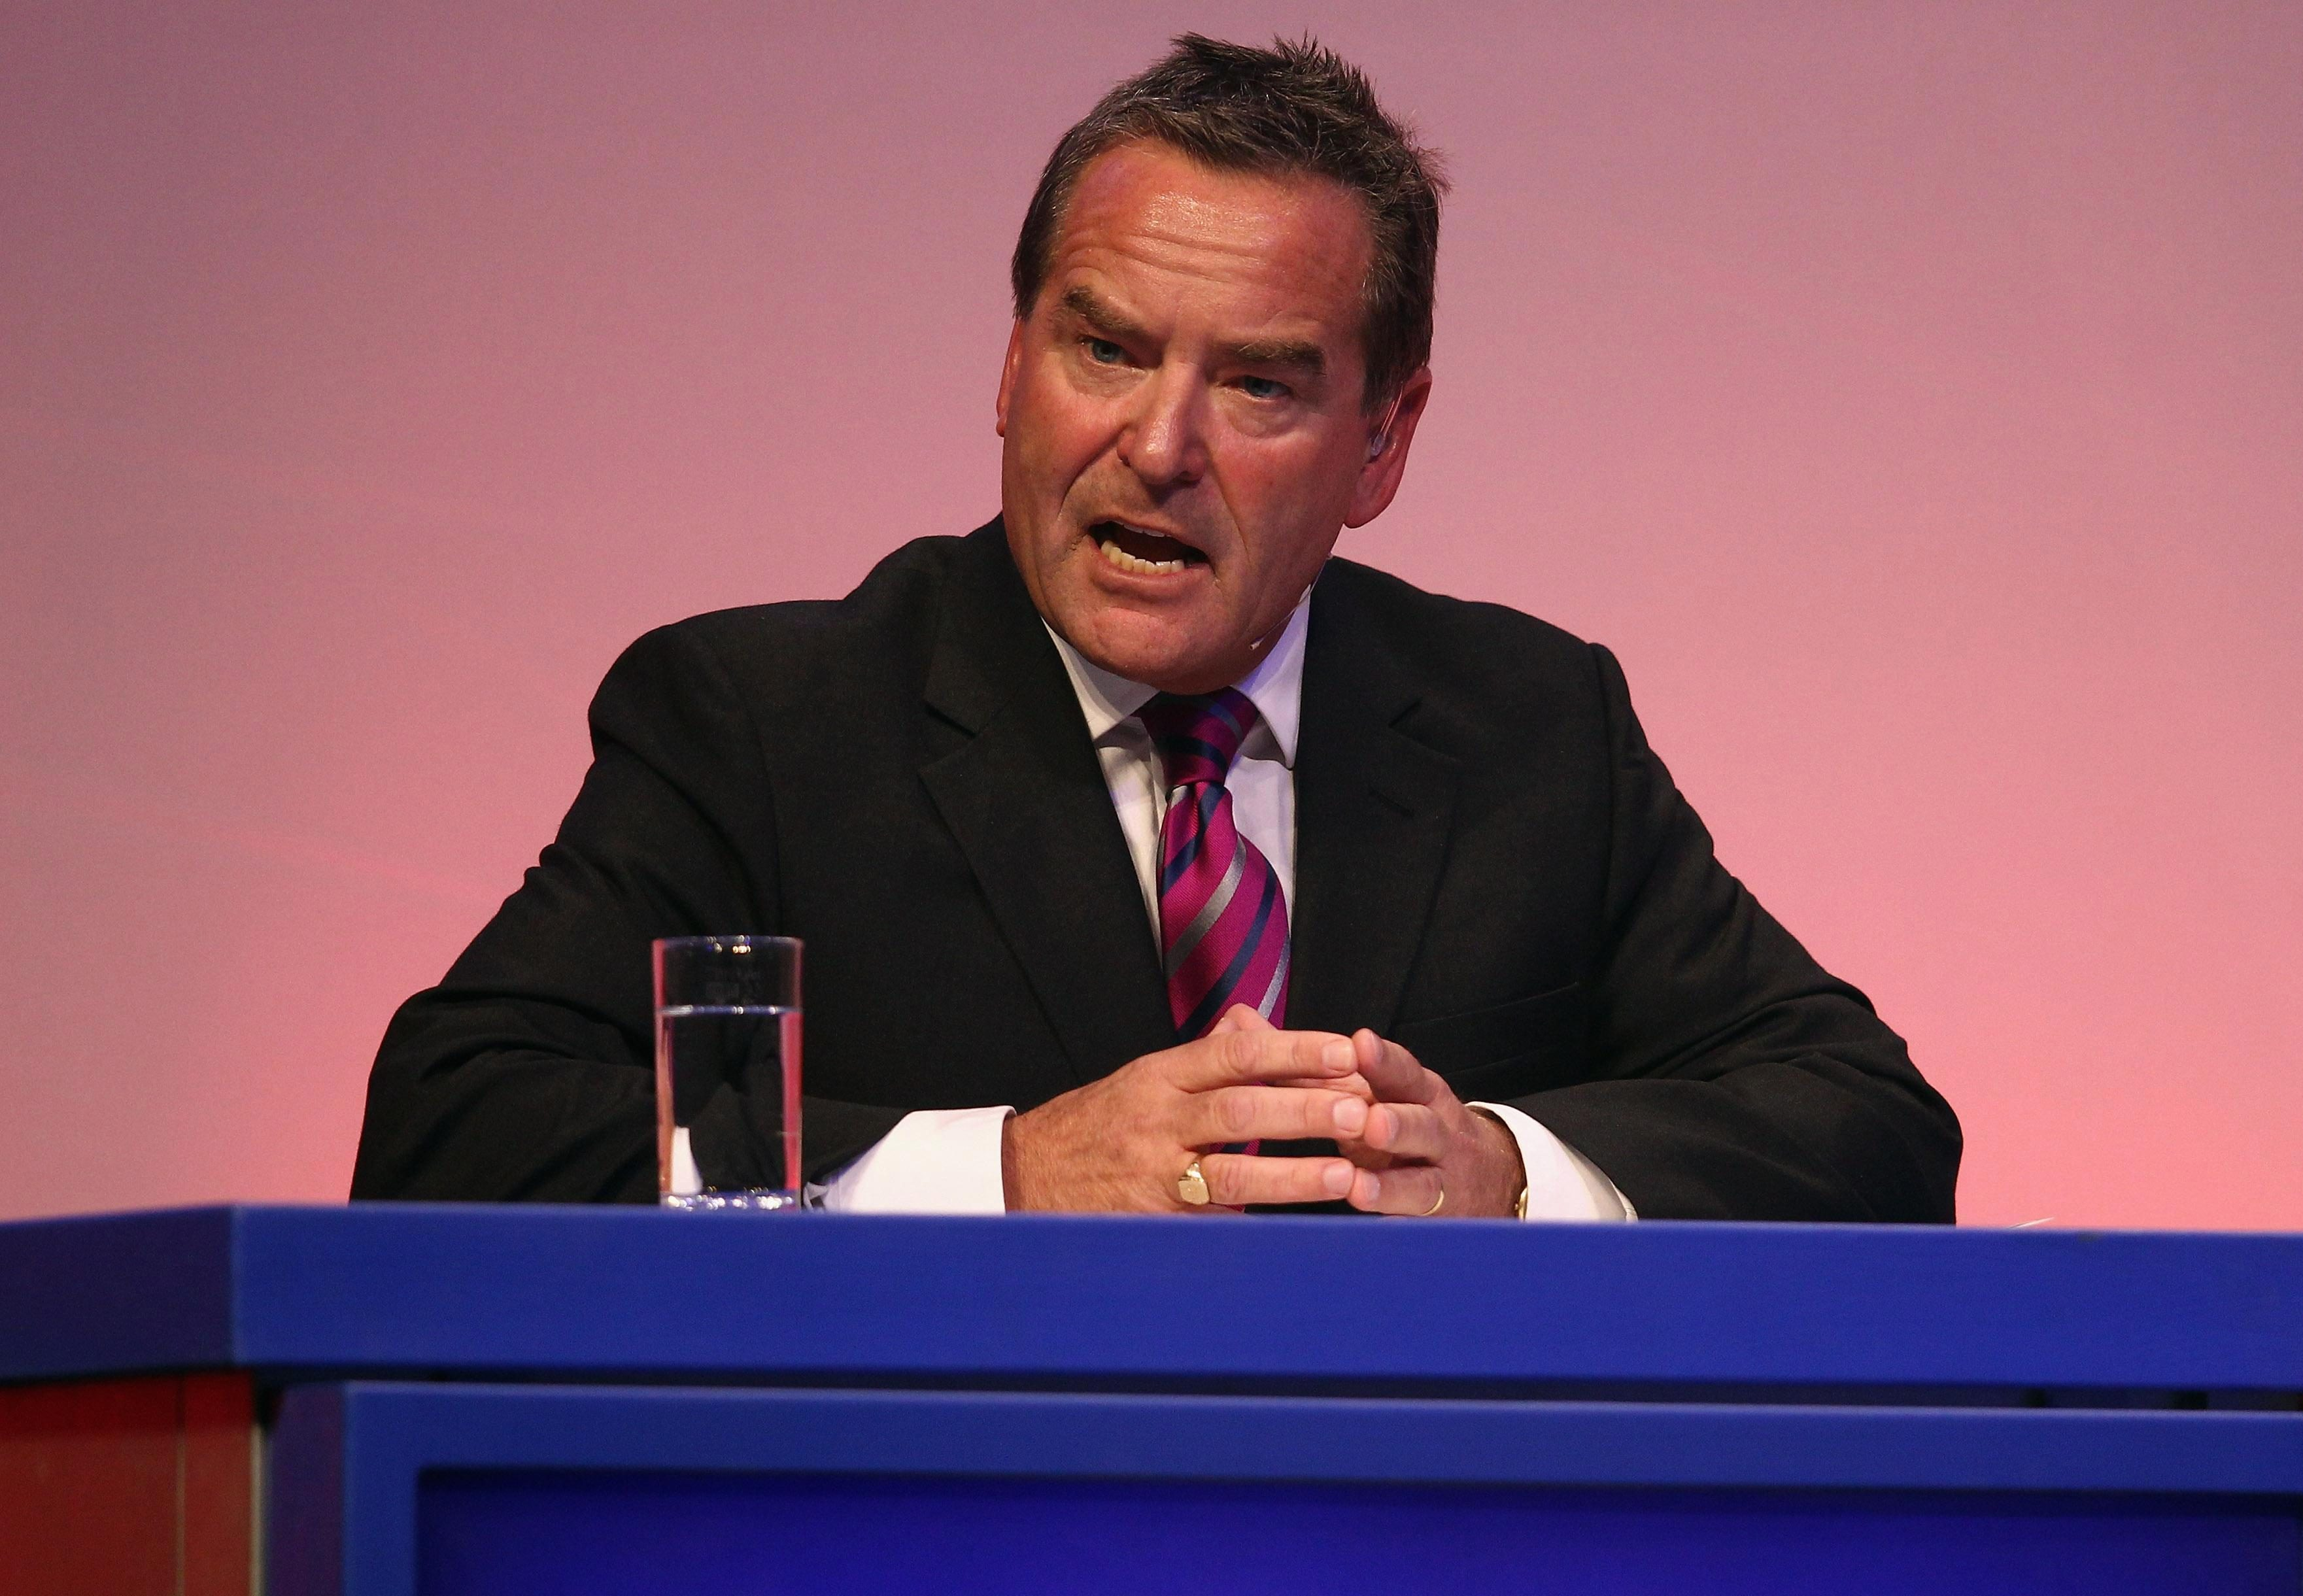 That's right, even Stelling's in on it